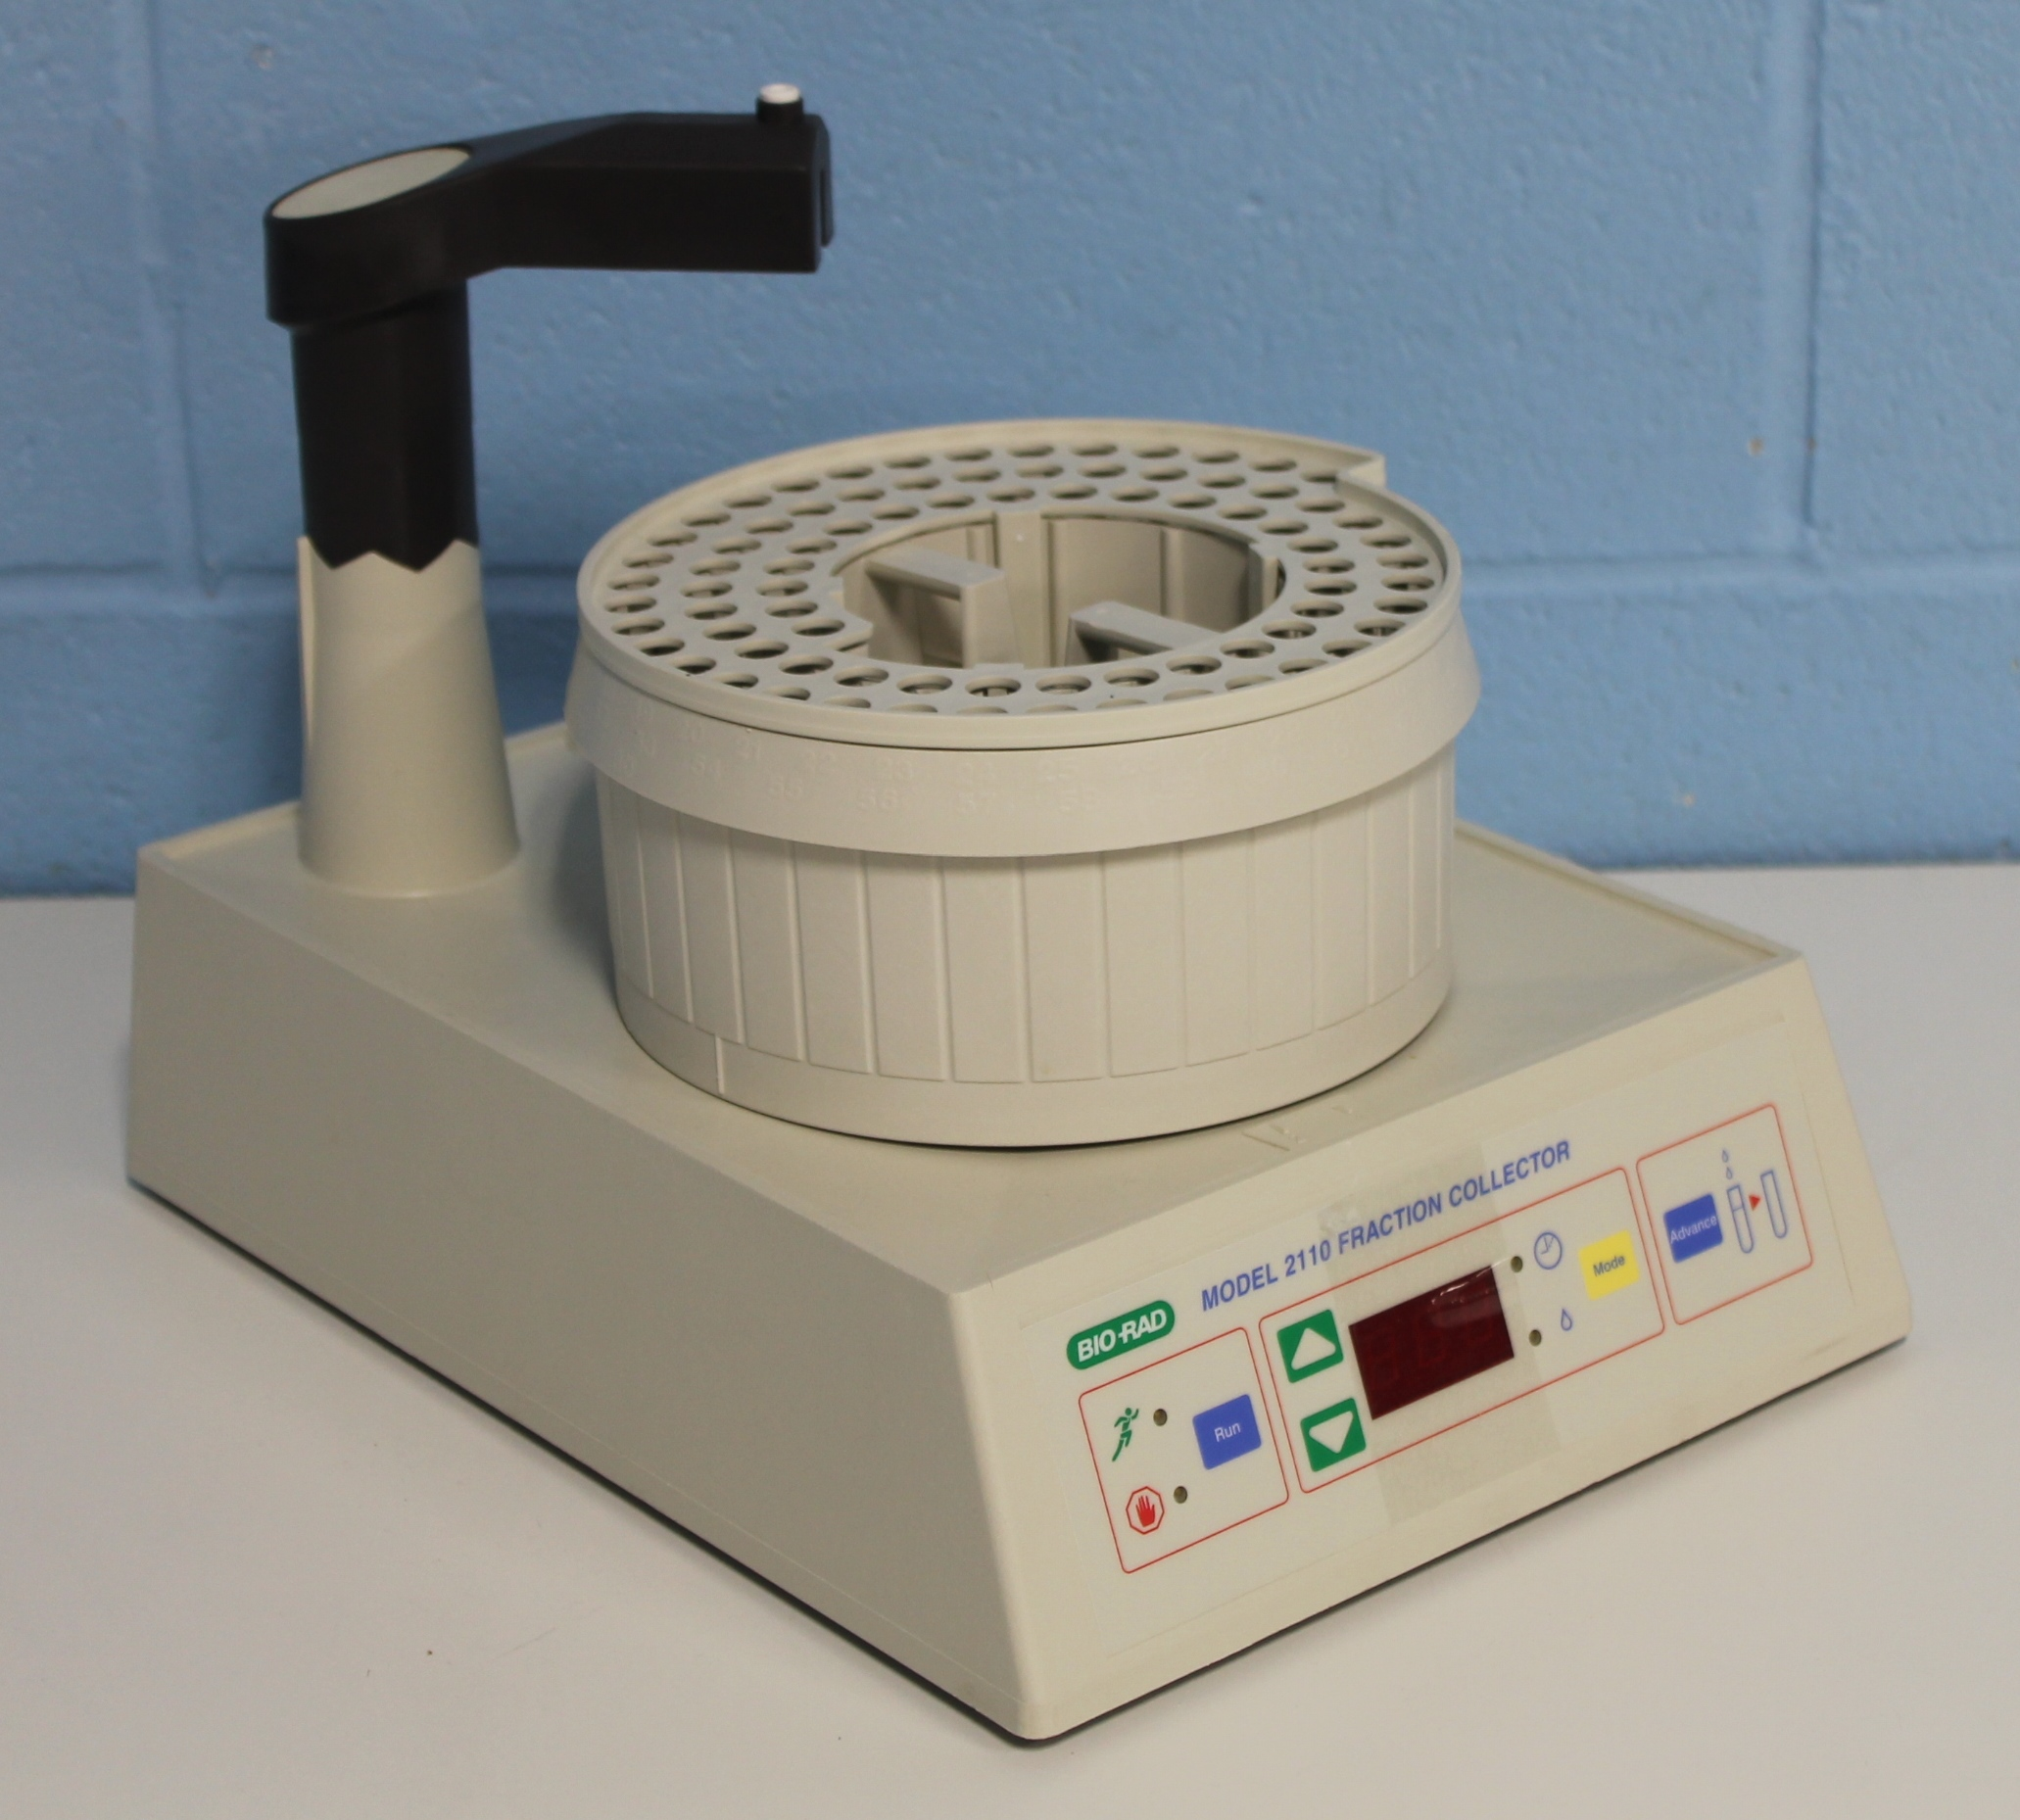 Bio-Rad 2110 Fraction Collector Image